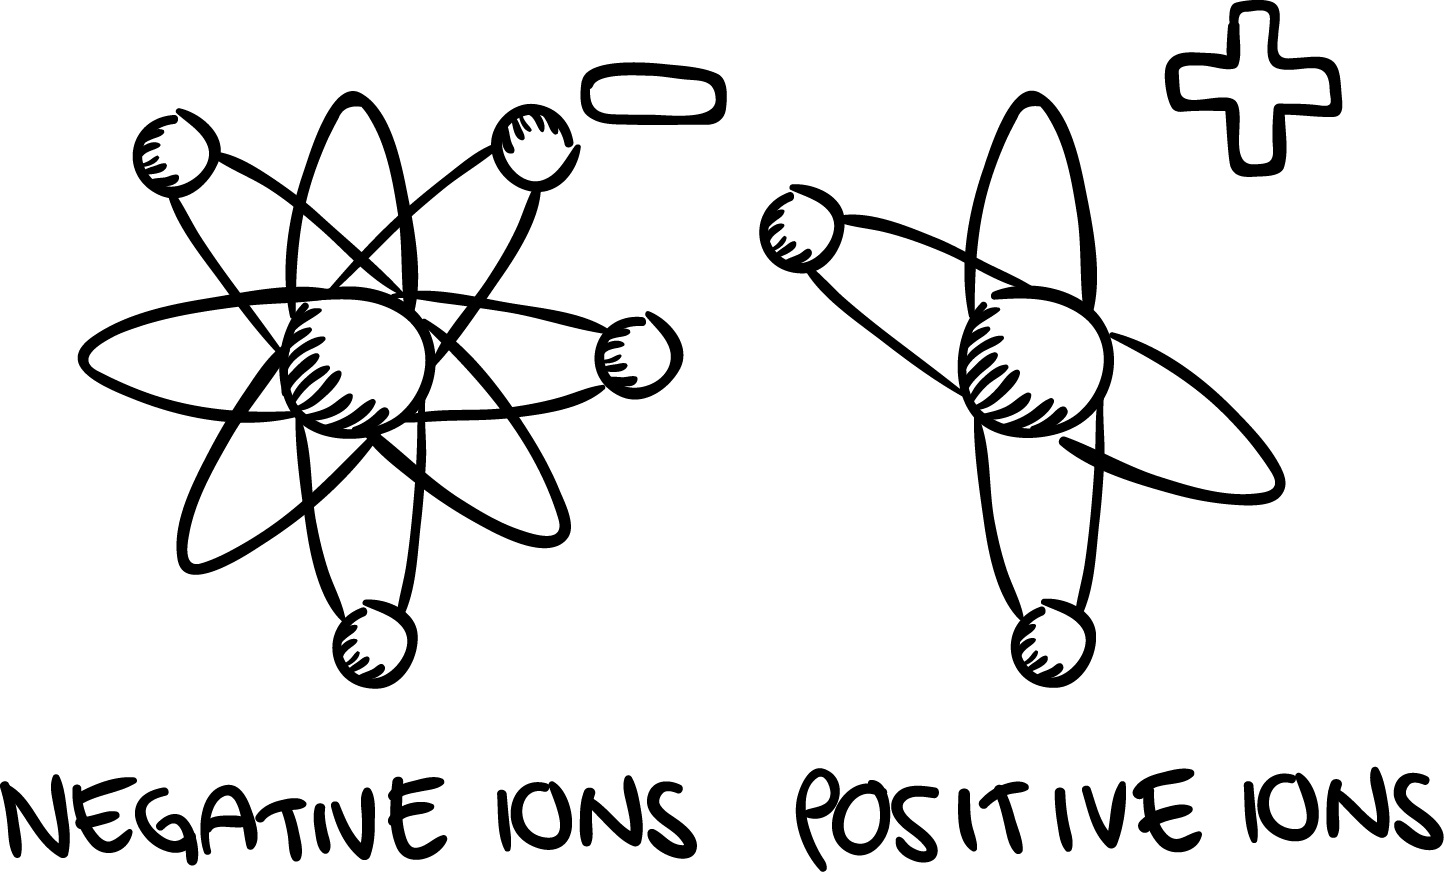 medium resolution of negative ions have more electrons than the neutral element while positive ions have fewer electrons